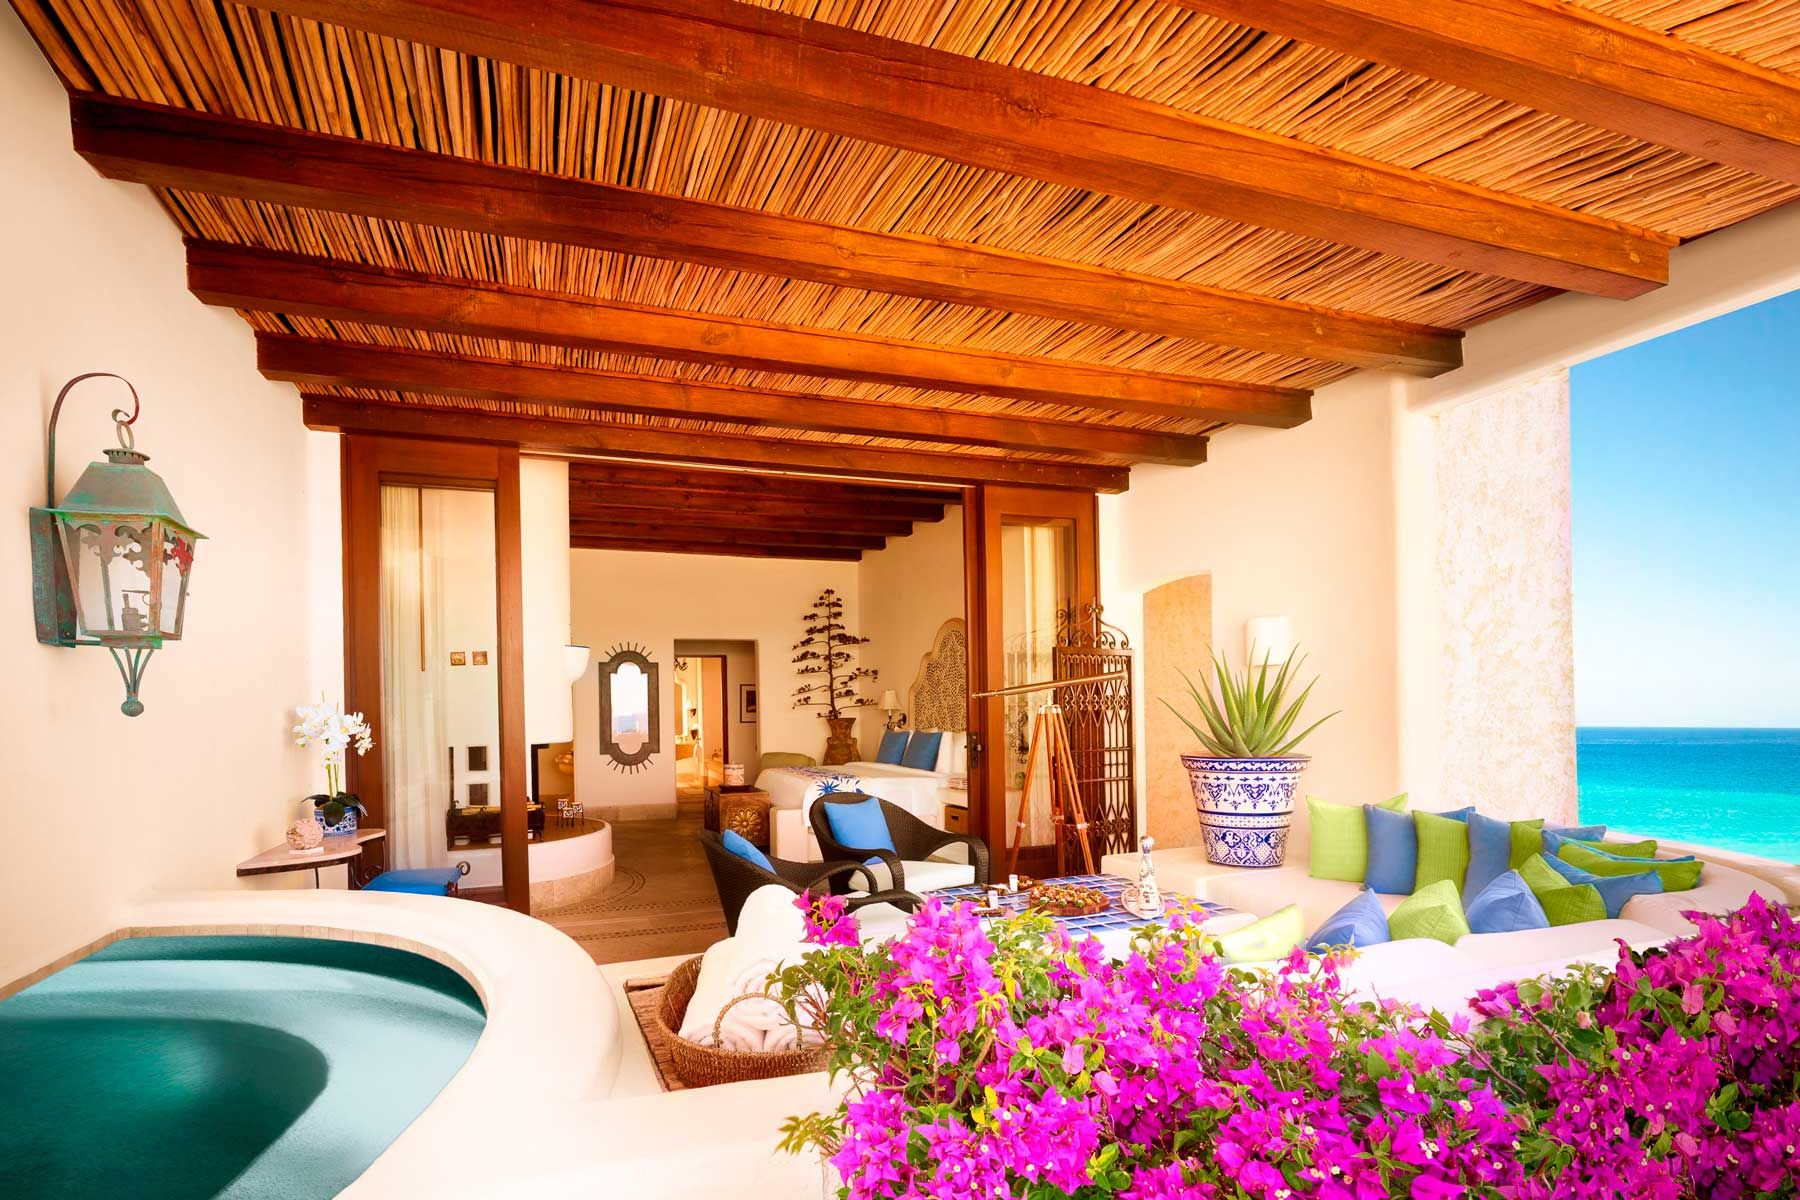 20 Hotels Around The World With Stunning Private Hot Tubs Paraiso Indoor Jacuzzi Hotel